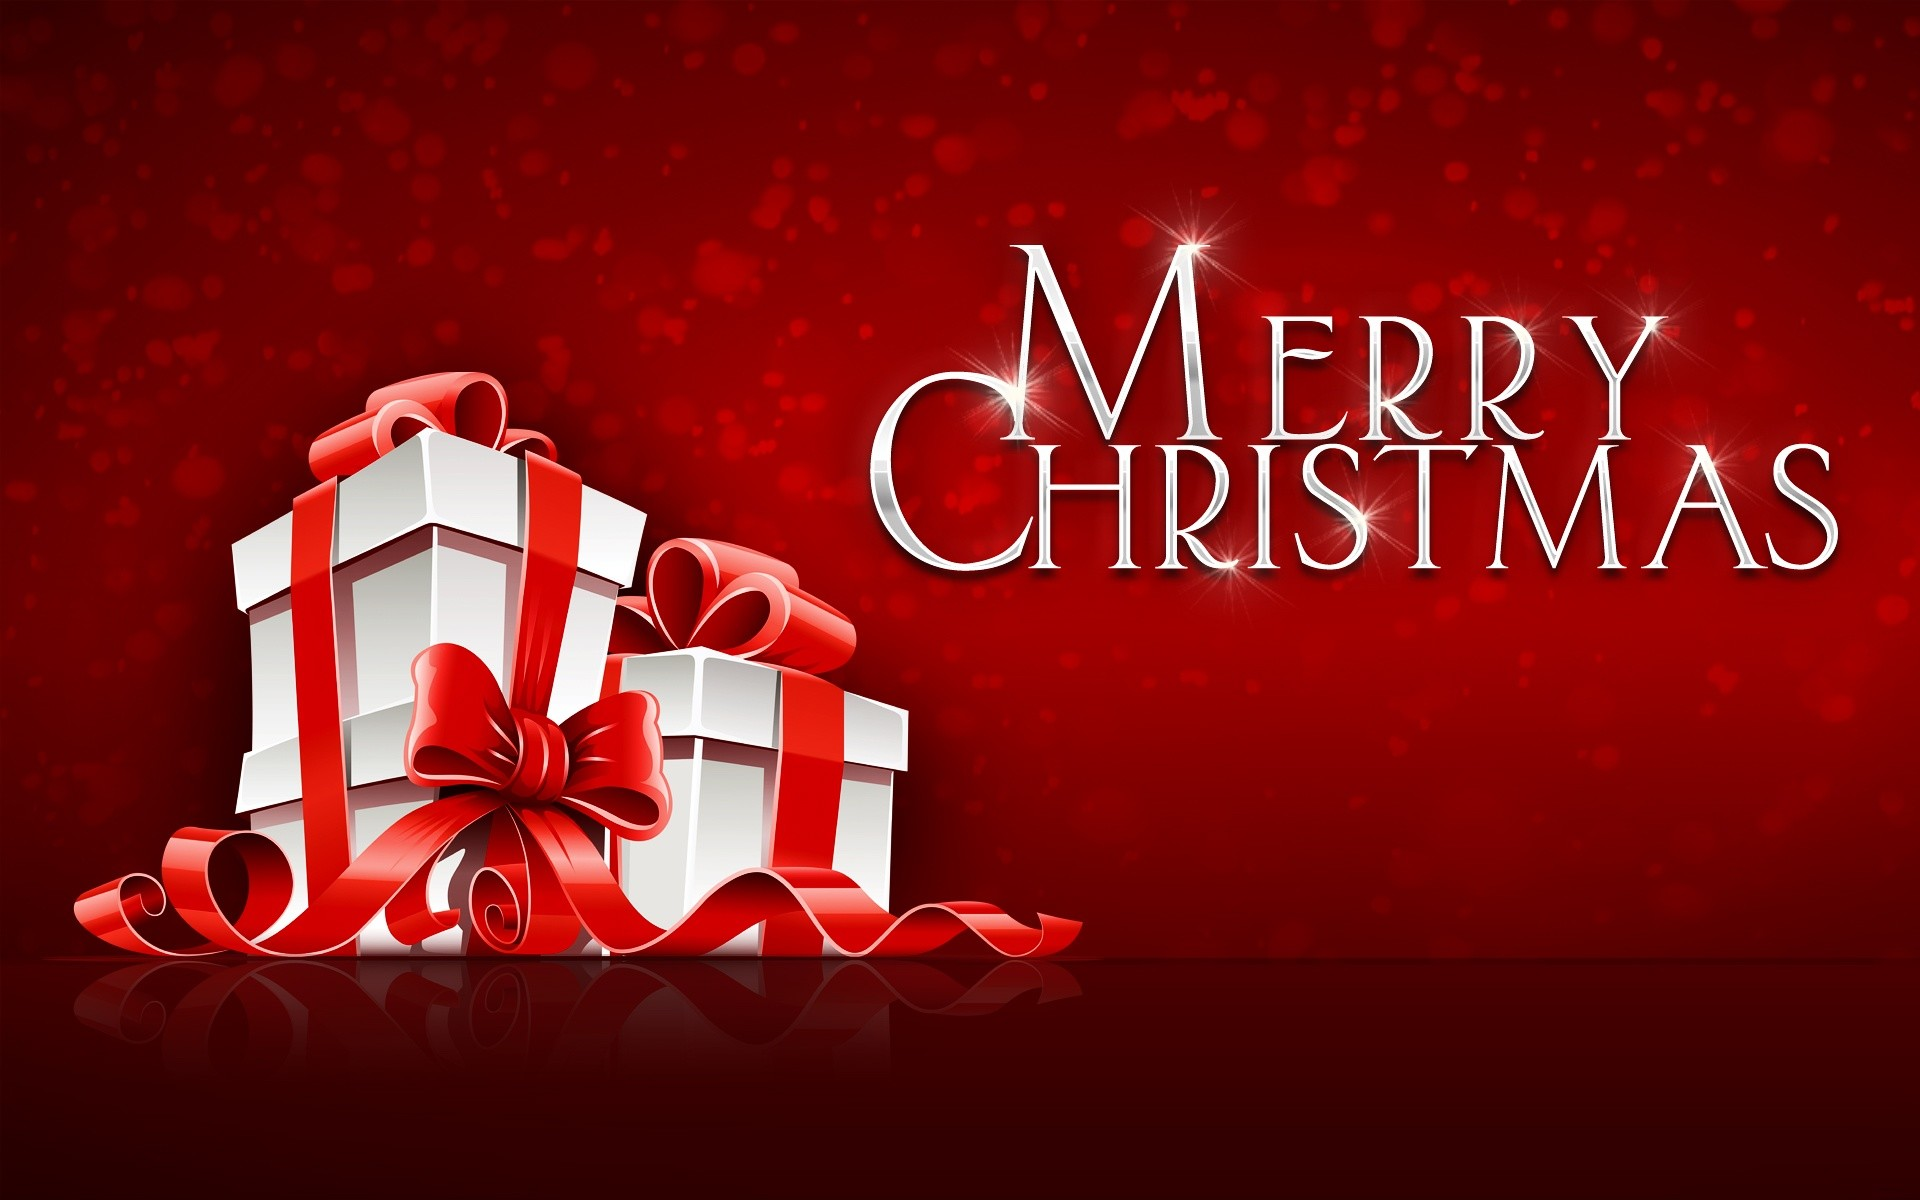 15 merry christmas free hd wallpapers merry christmas